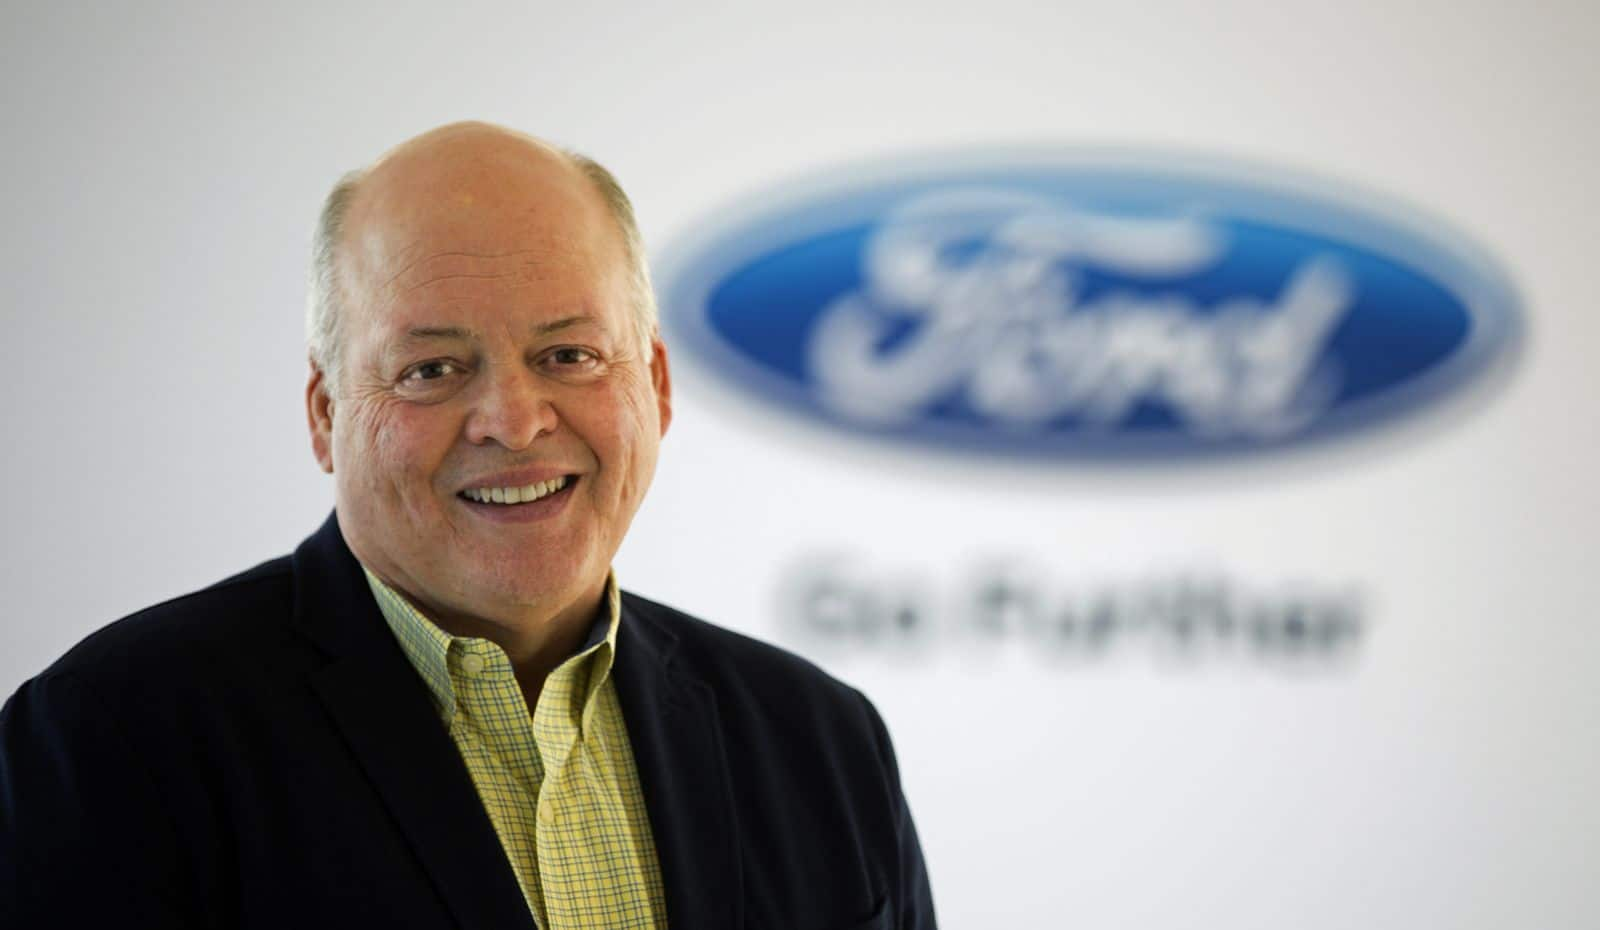 Ford announces new President and further restructuring